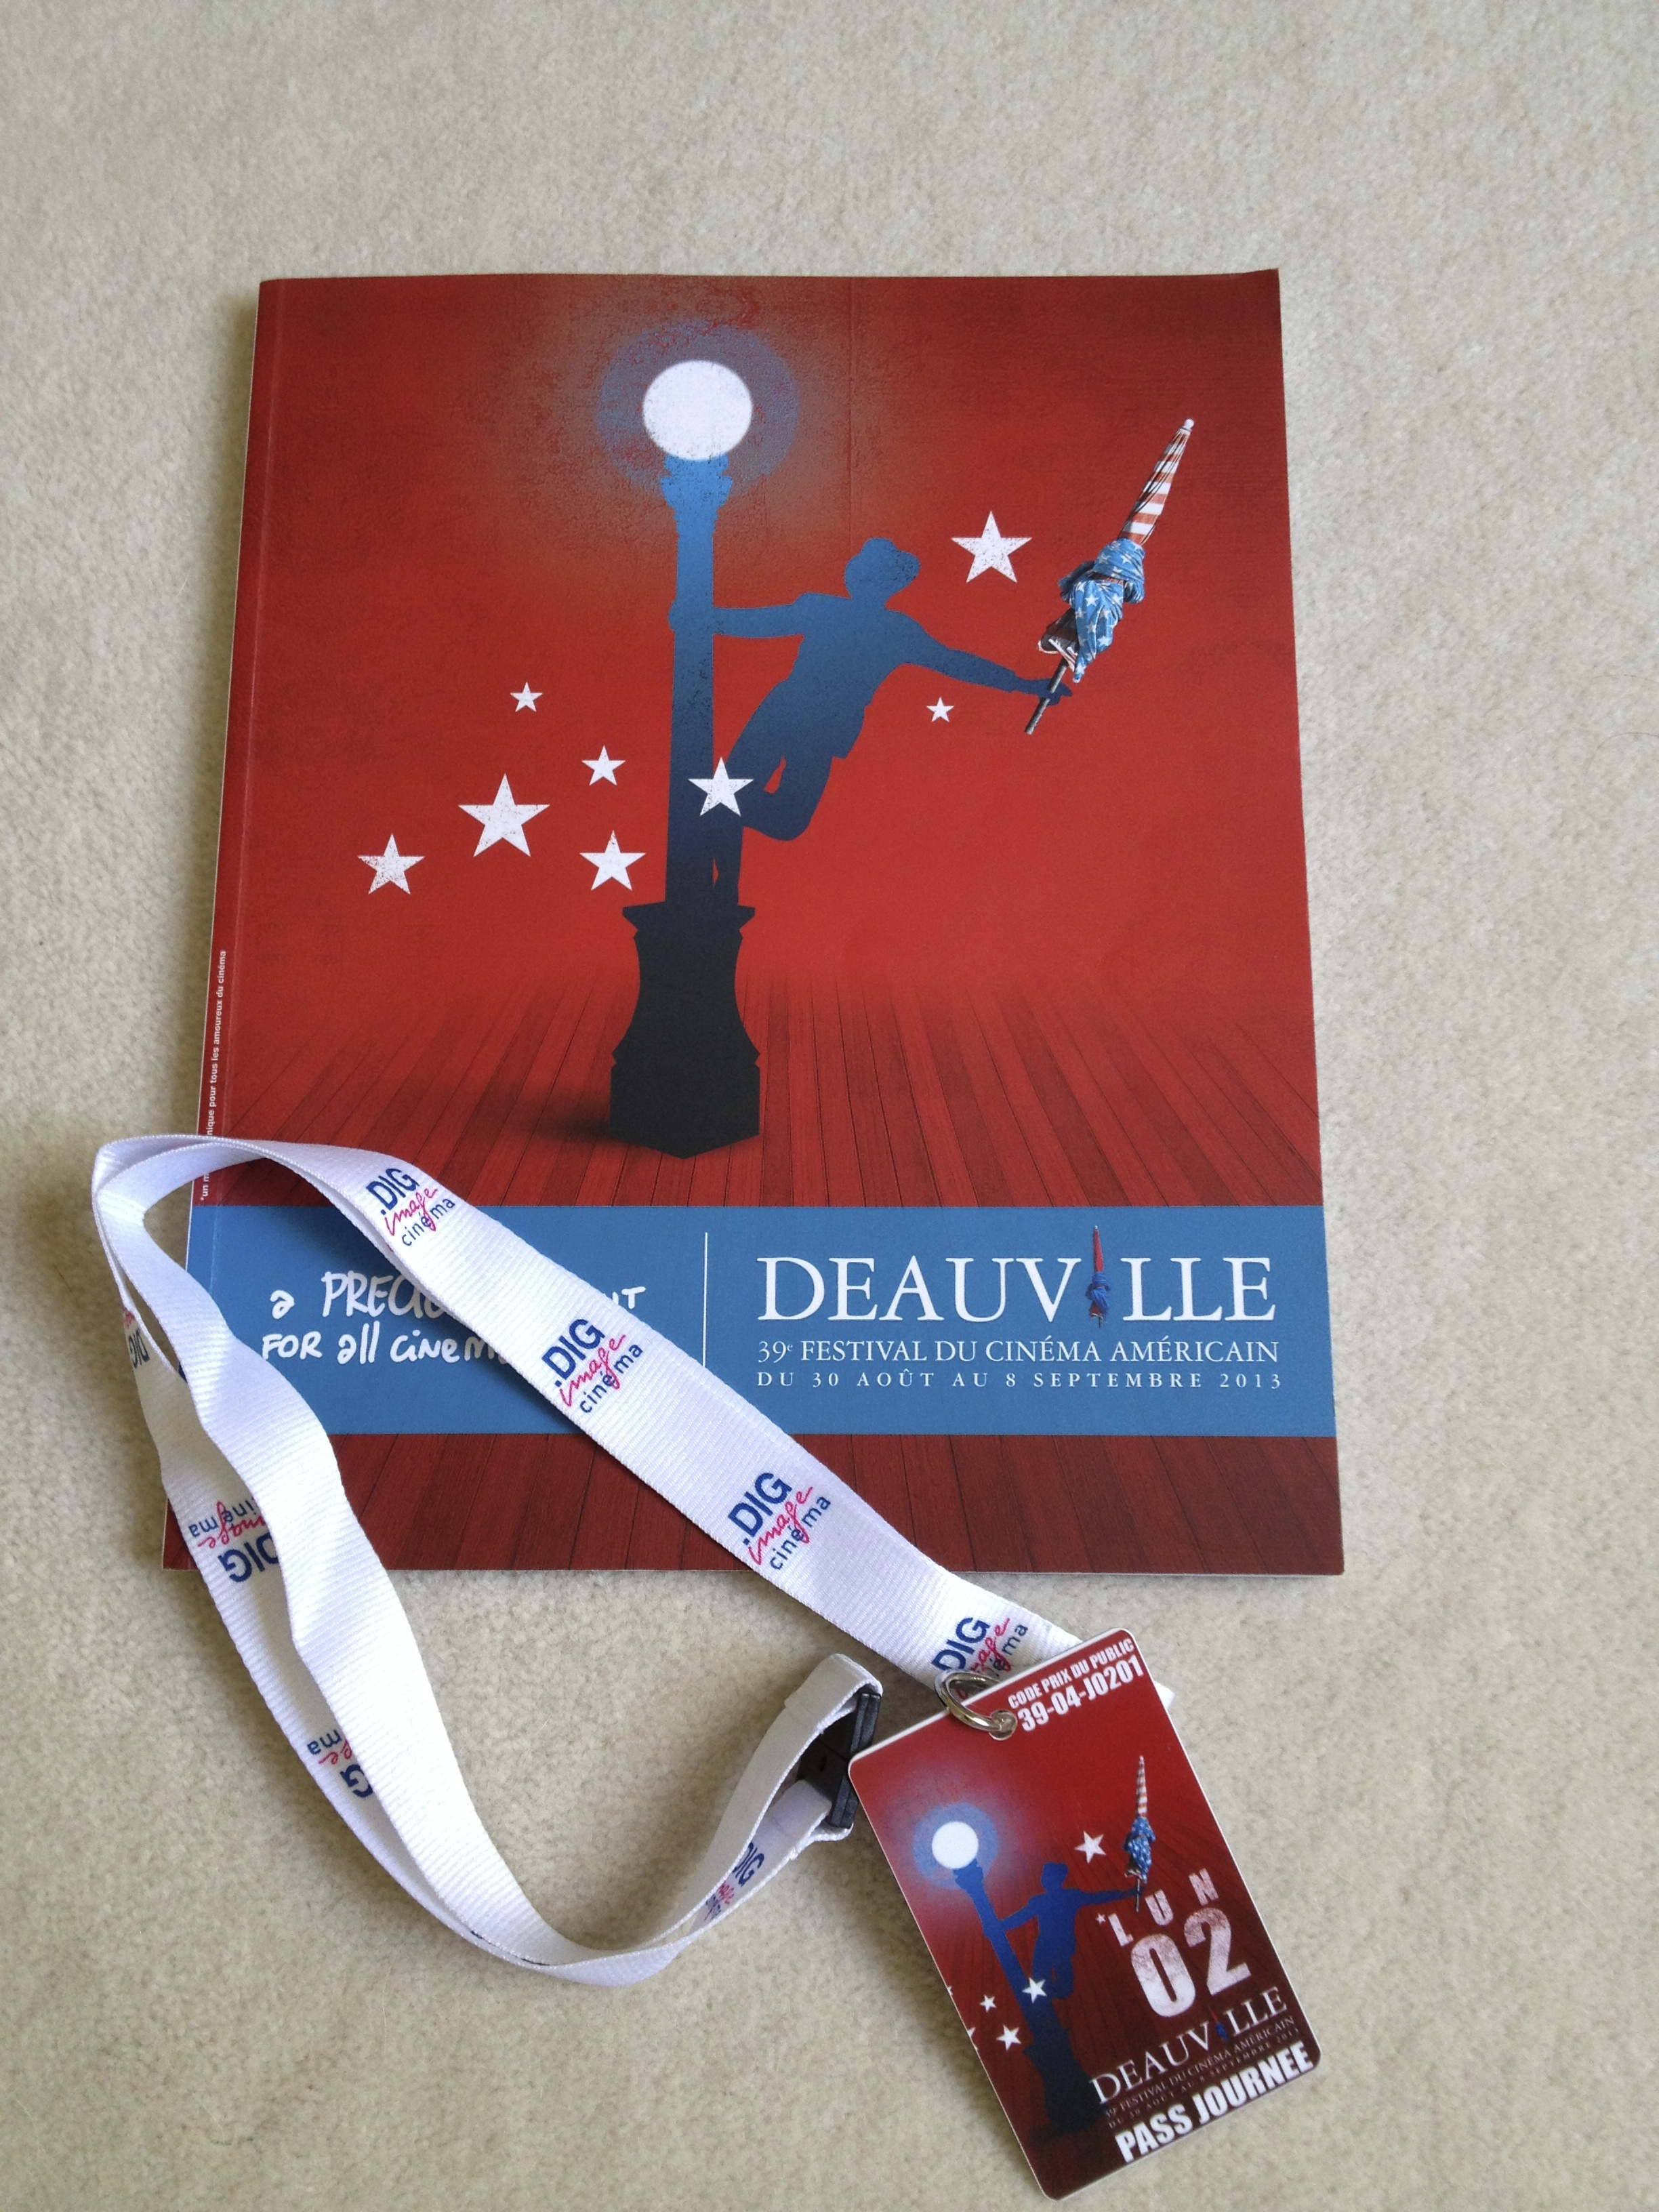 39th American Film Festival - Deauville, Normandy, France